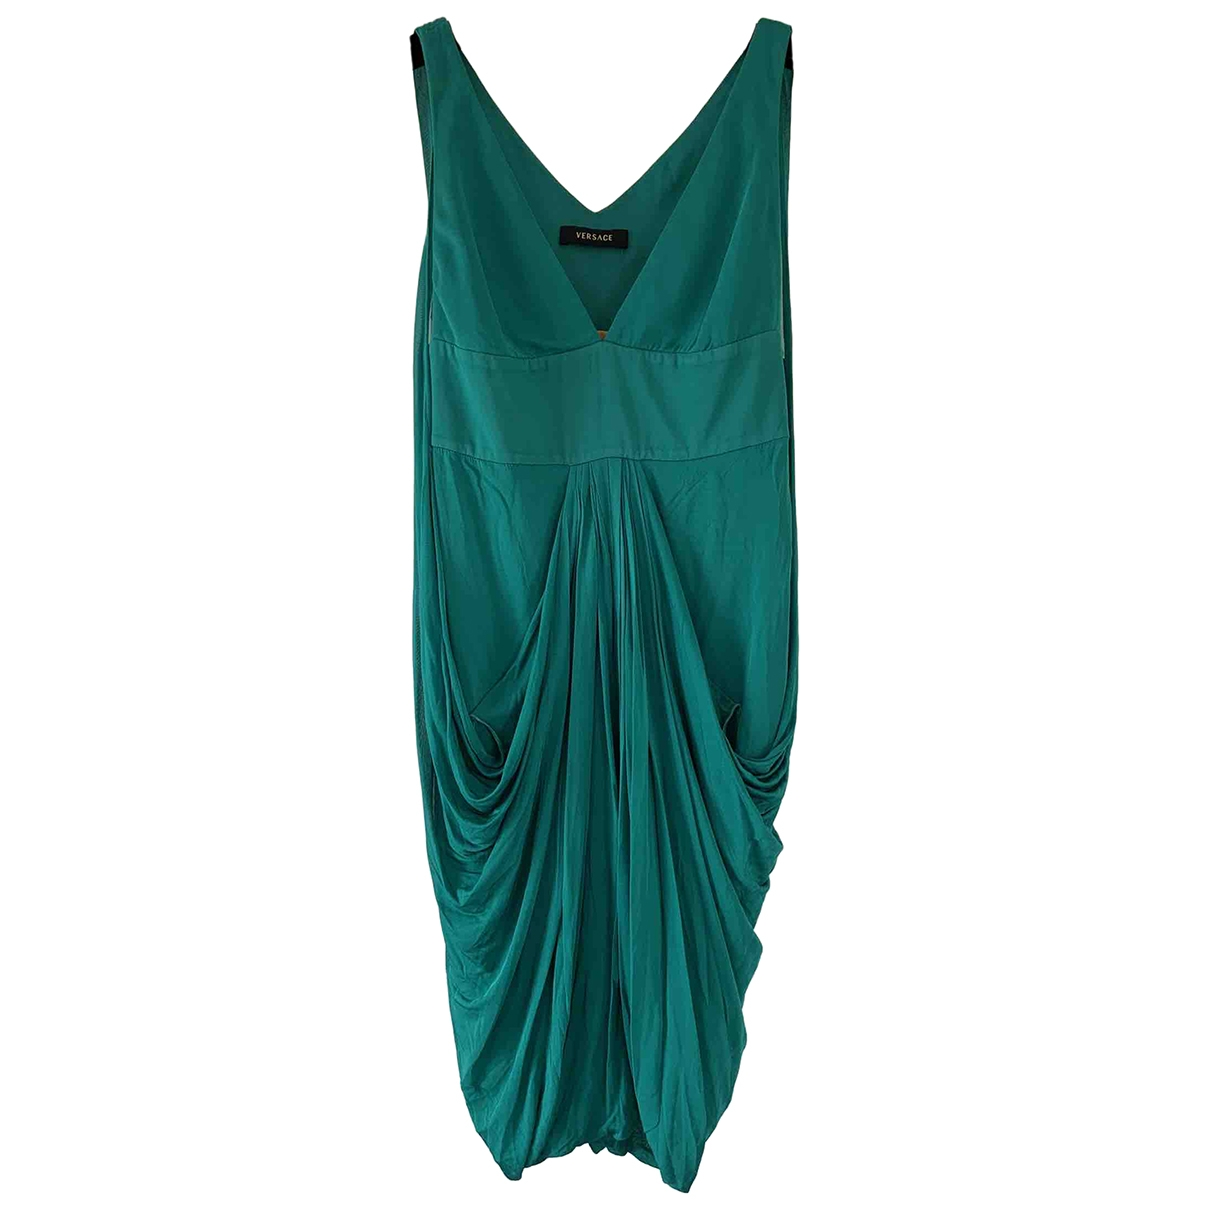 Versace \N Turquoise dress for Women 40 IT